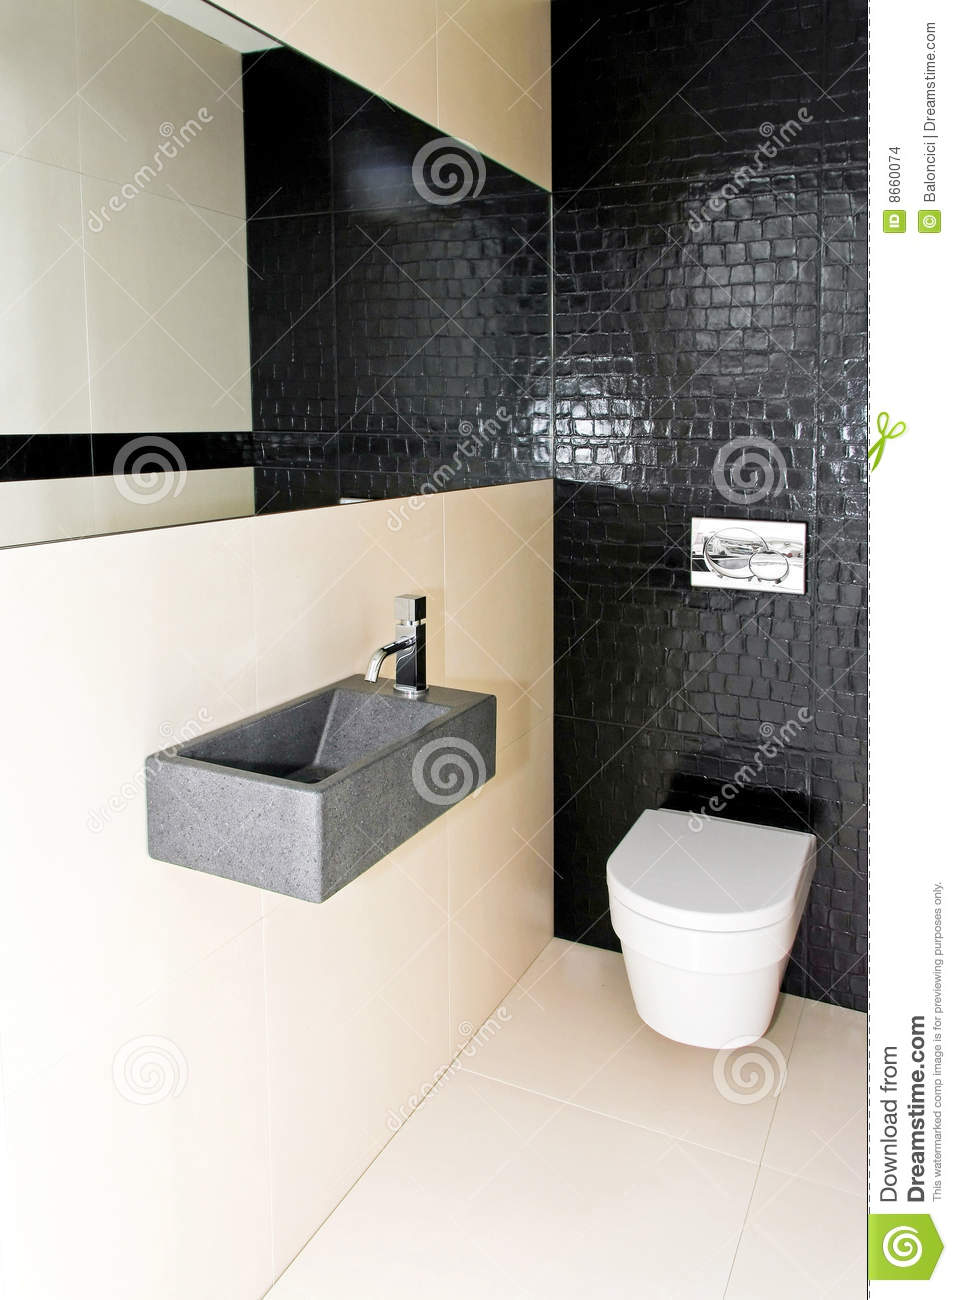 Small toilet 2 stock photo image of stylish ceramics for Small wc design